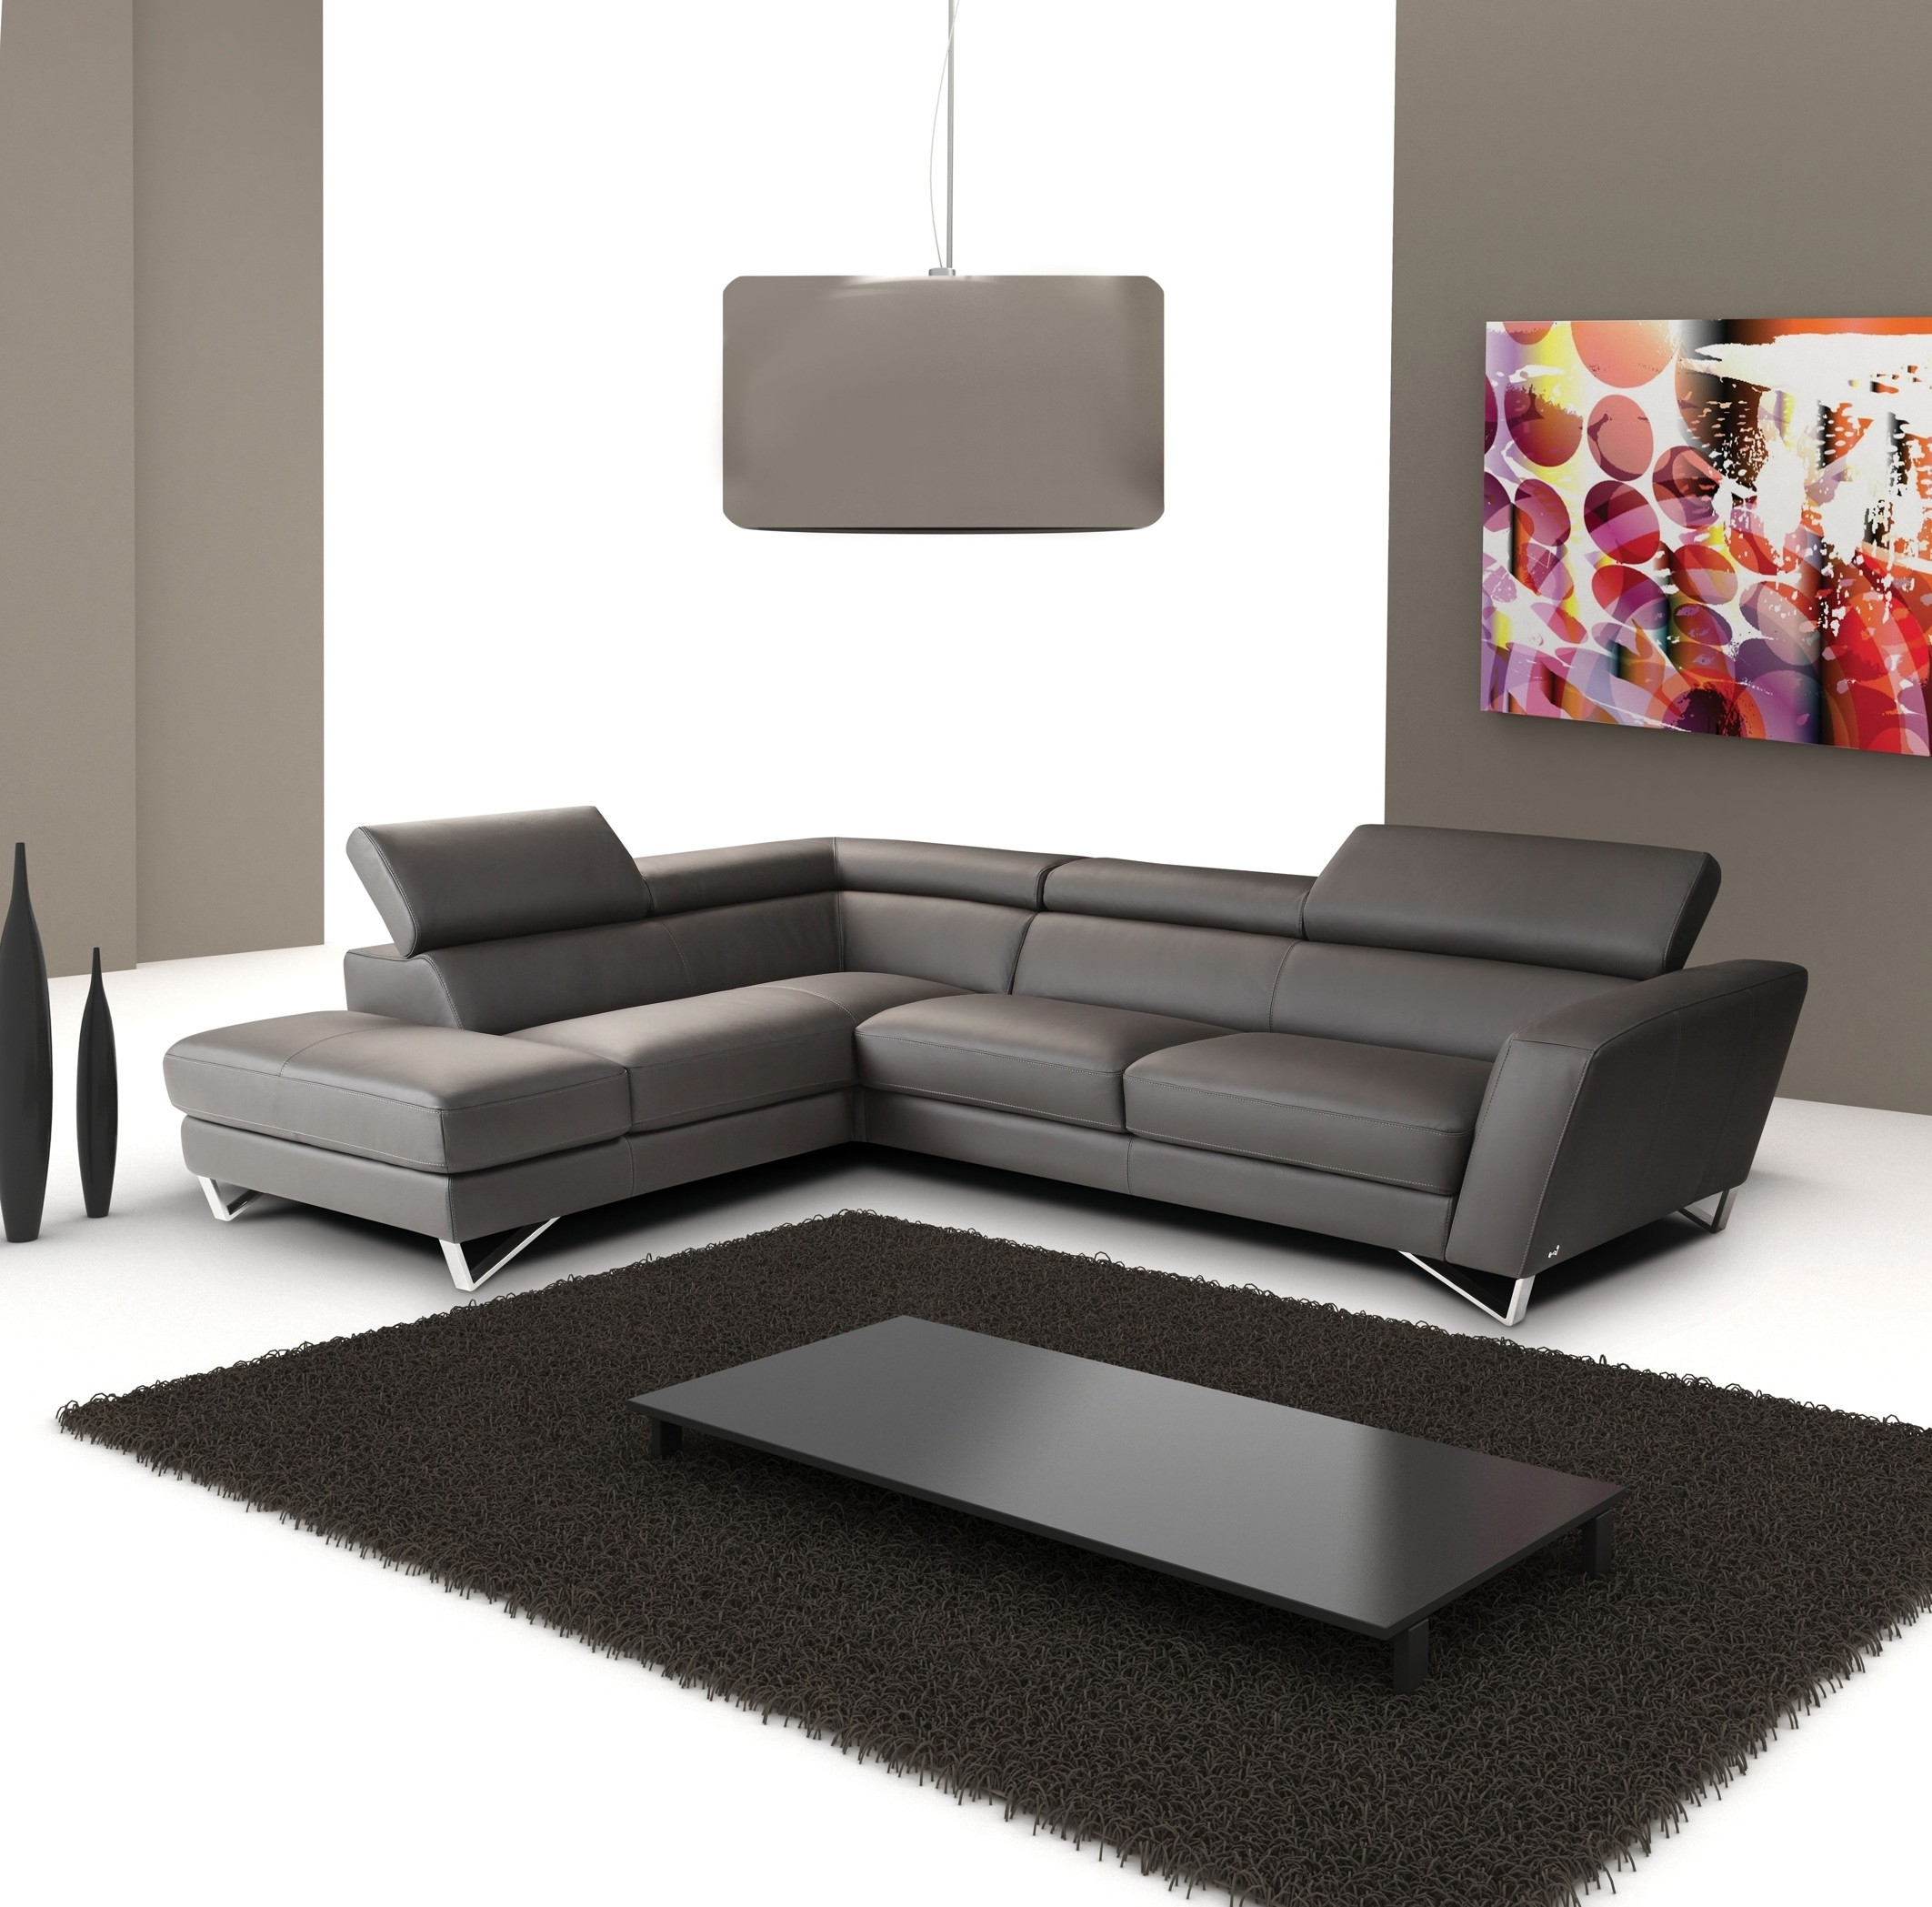 Sparta Italian Leather Modern Sectional Sofa Within Modern Sectional Sofas (Image 9 of 10)